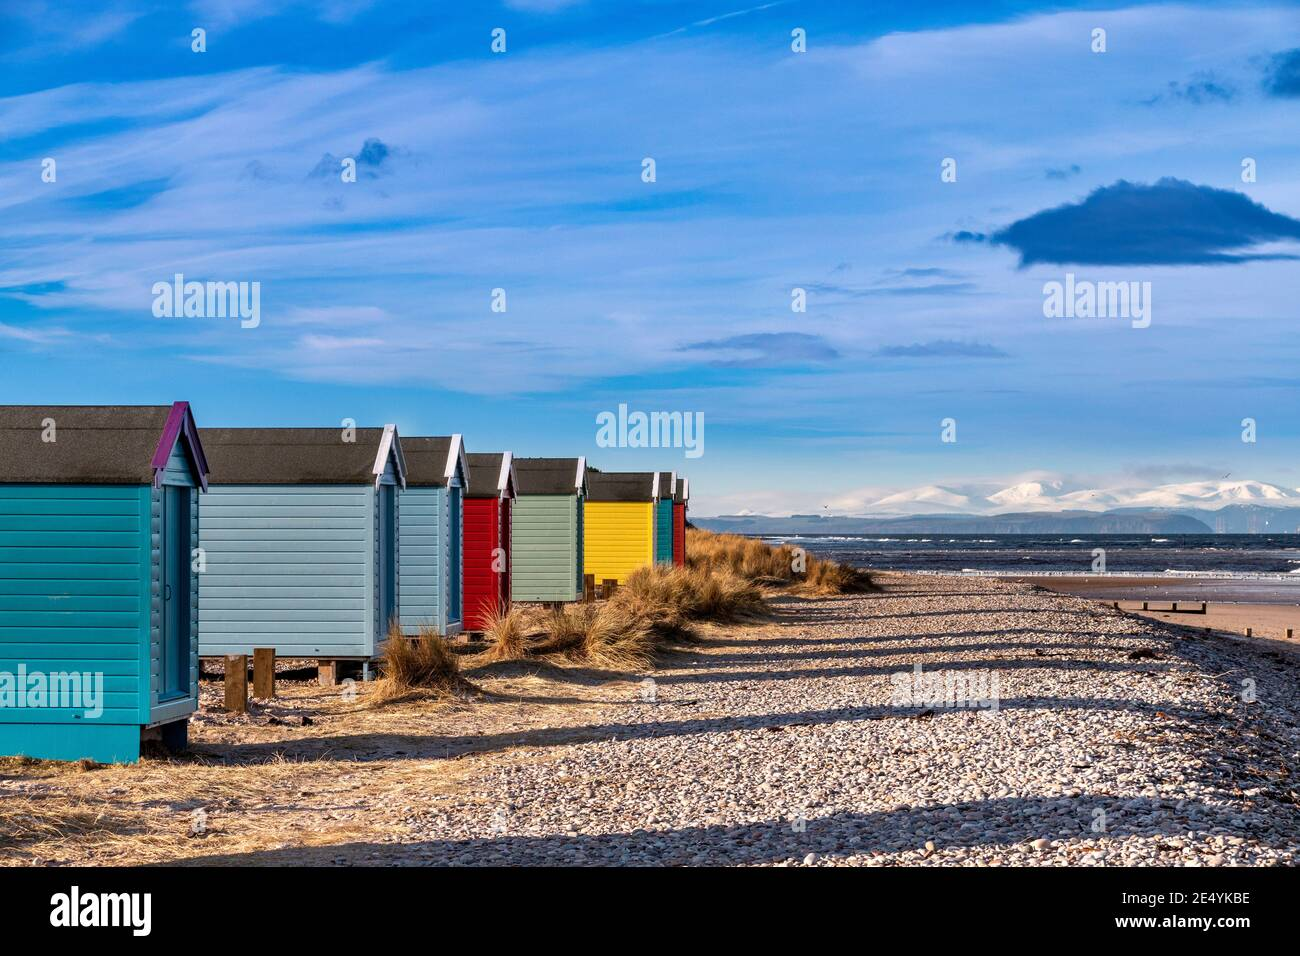 FINDHORN MORAY COAST SCOTLAND THE BEACH AND COLOURED CHALETS OR HUTS IN WINTER SNOW COVERED MOUNTAINS BEYOND Stock Photo